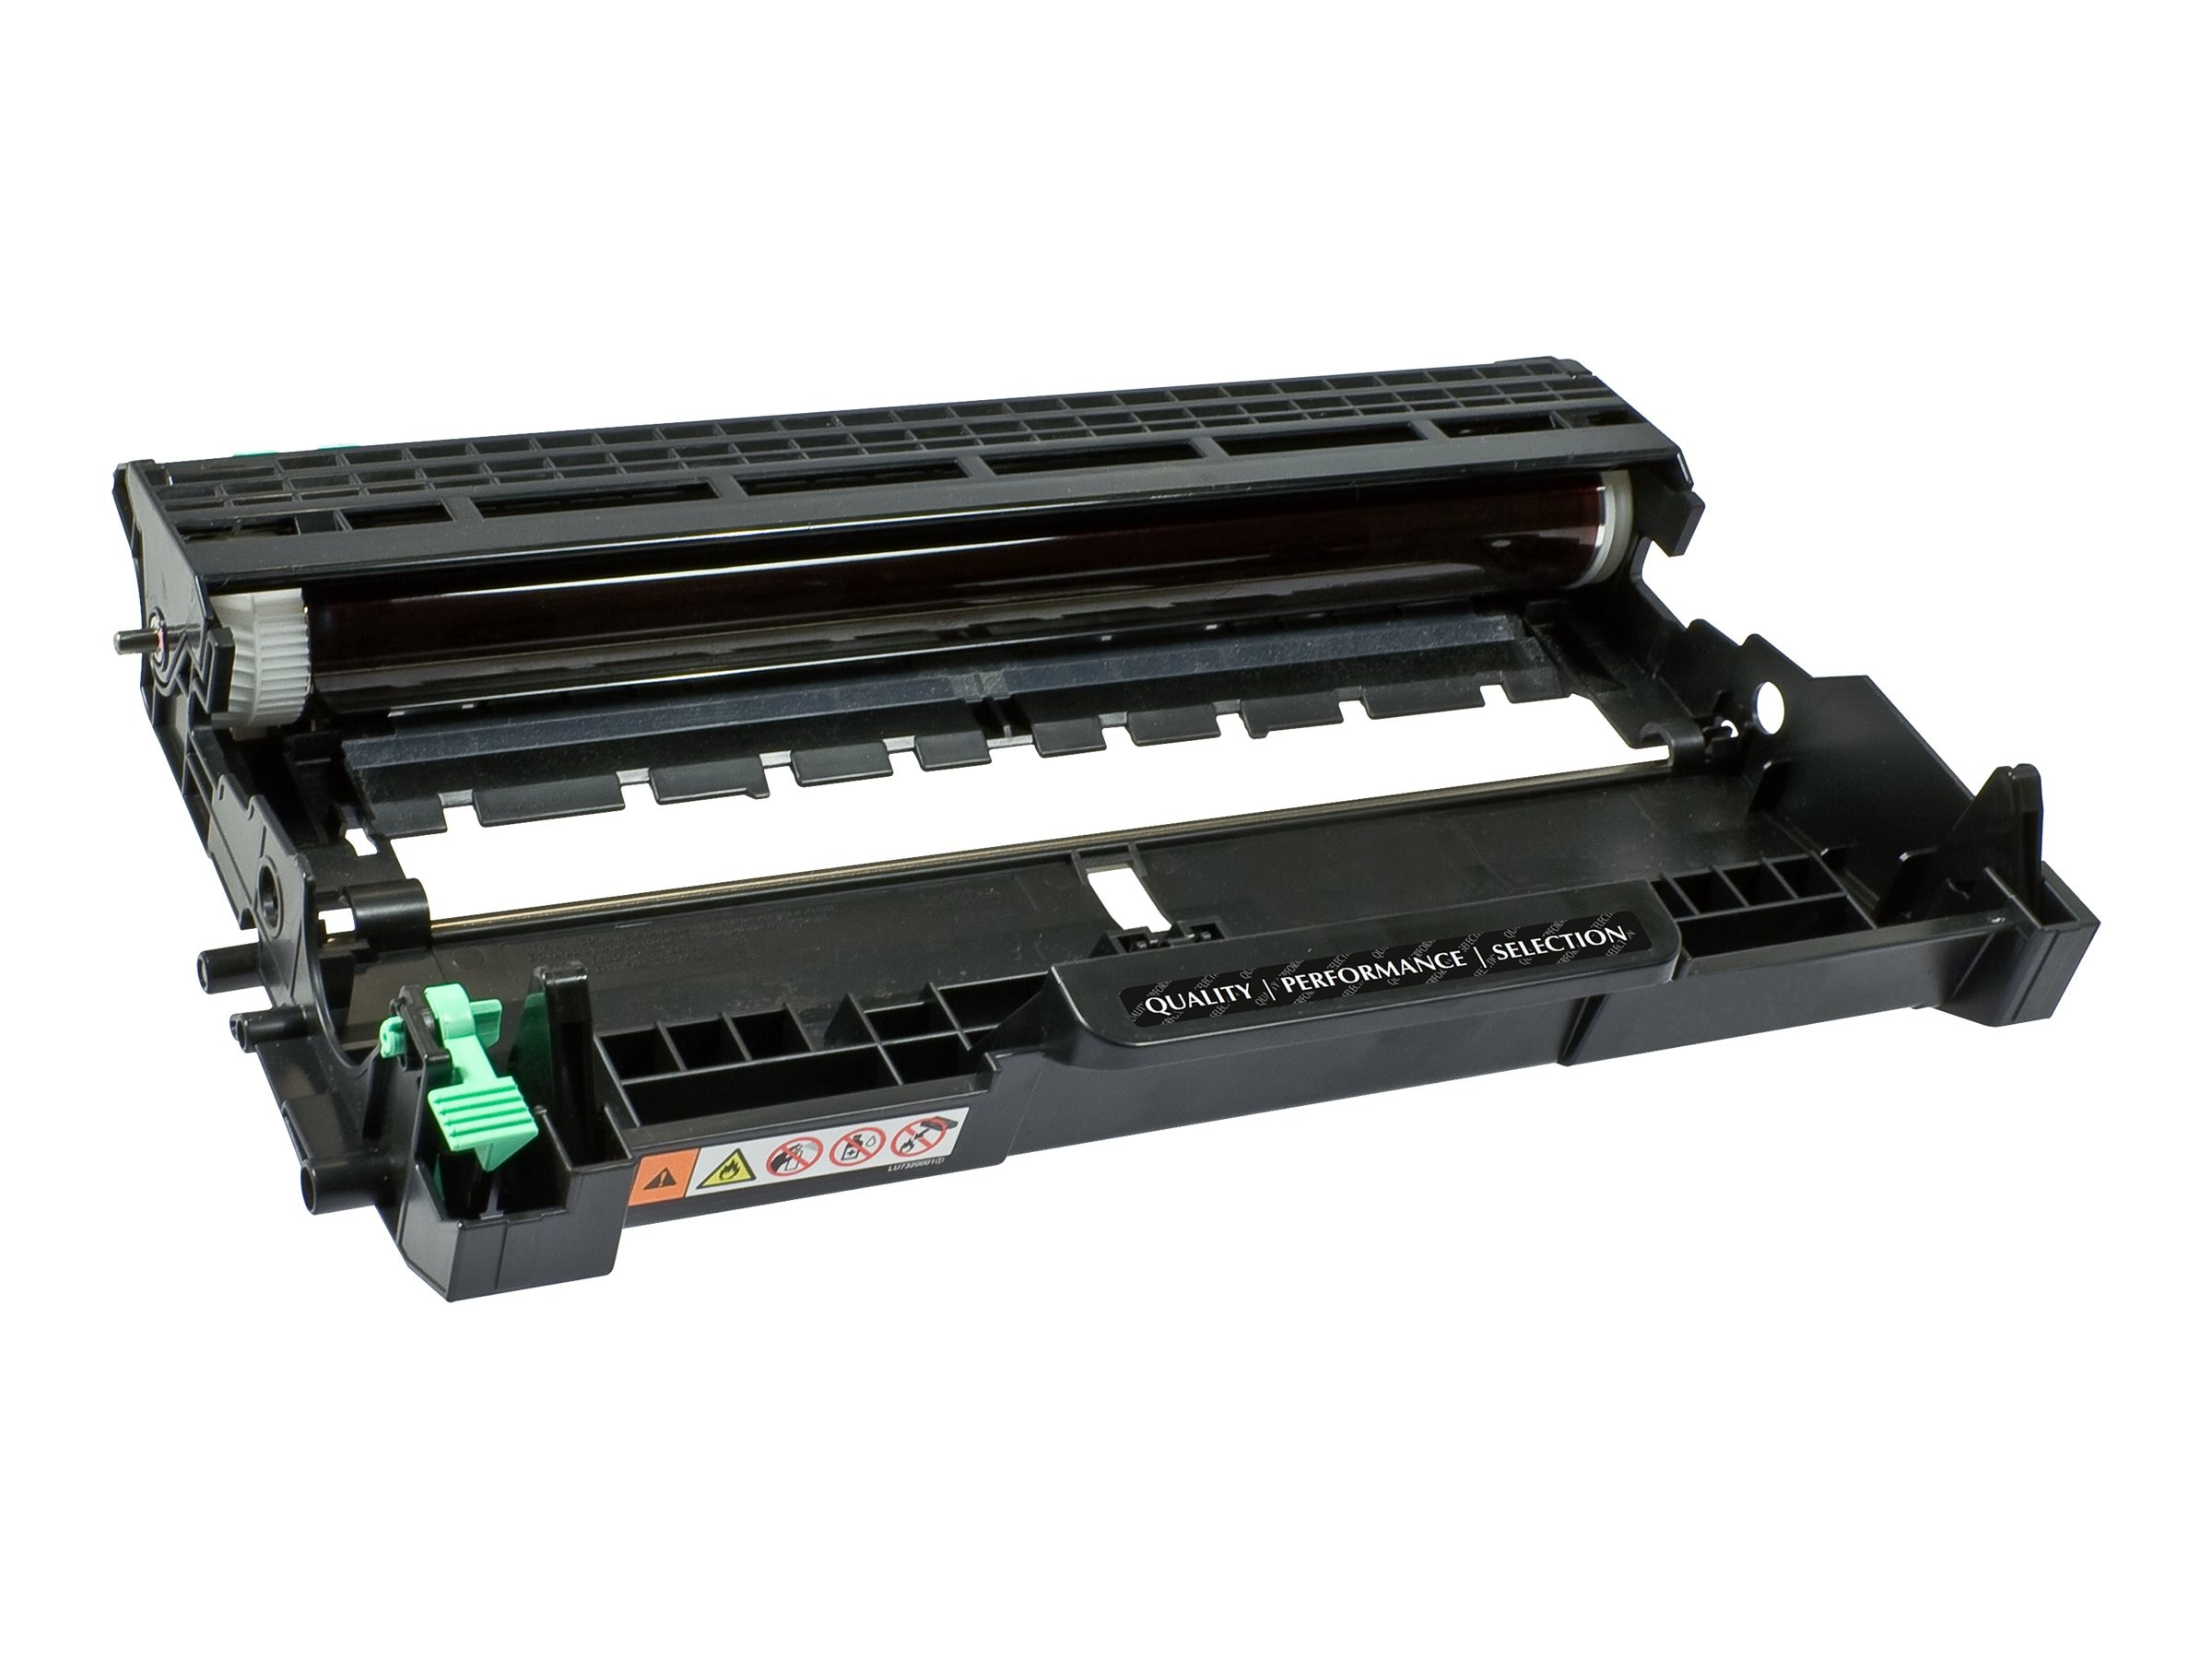 V7 DR420 Replacement Drum Unit for Brother, V7DR420, 17341573, Toner and Imaging Components